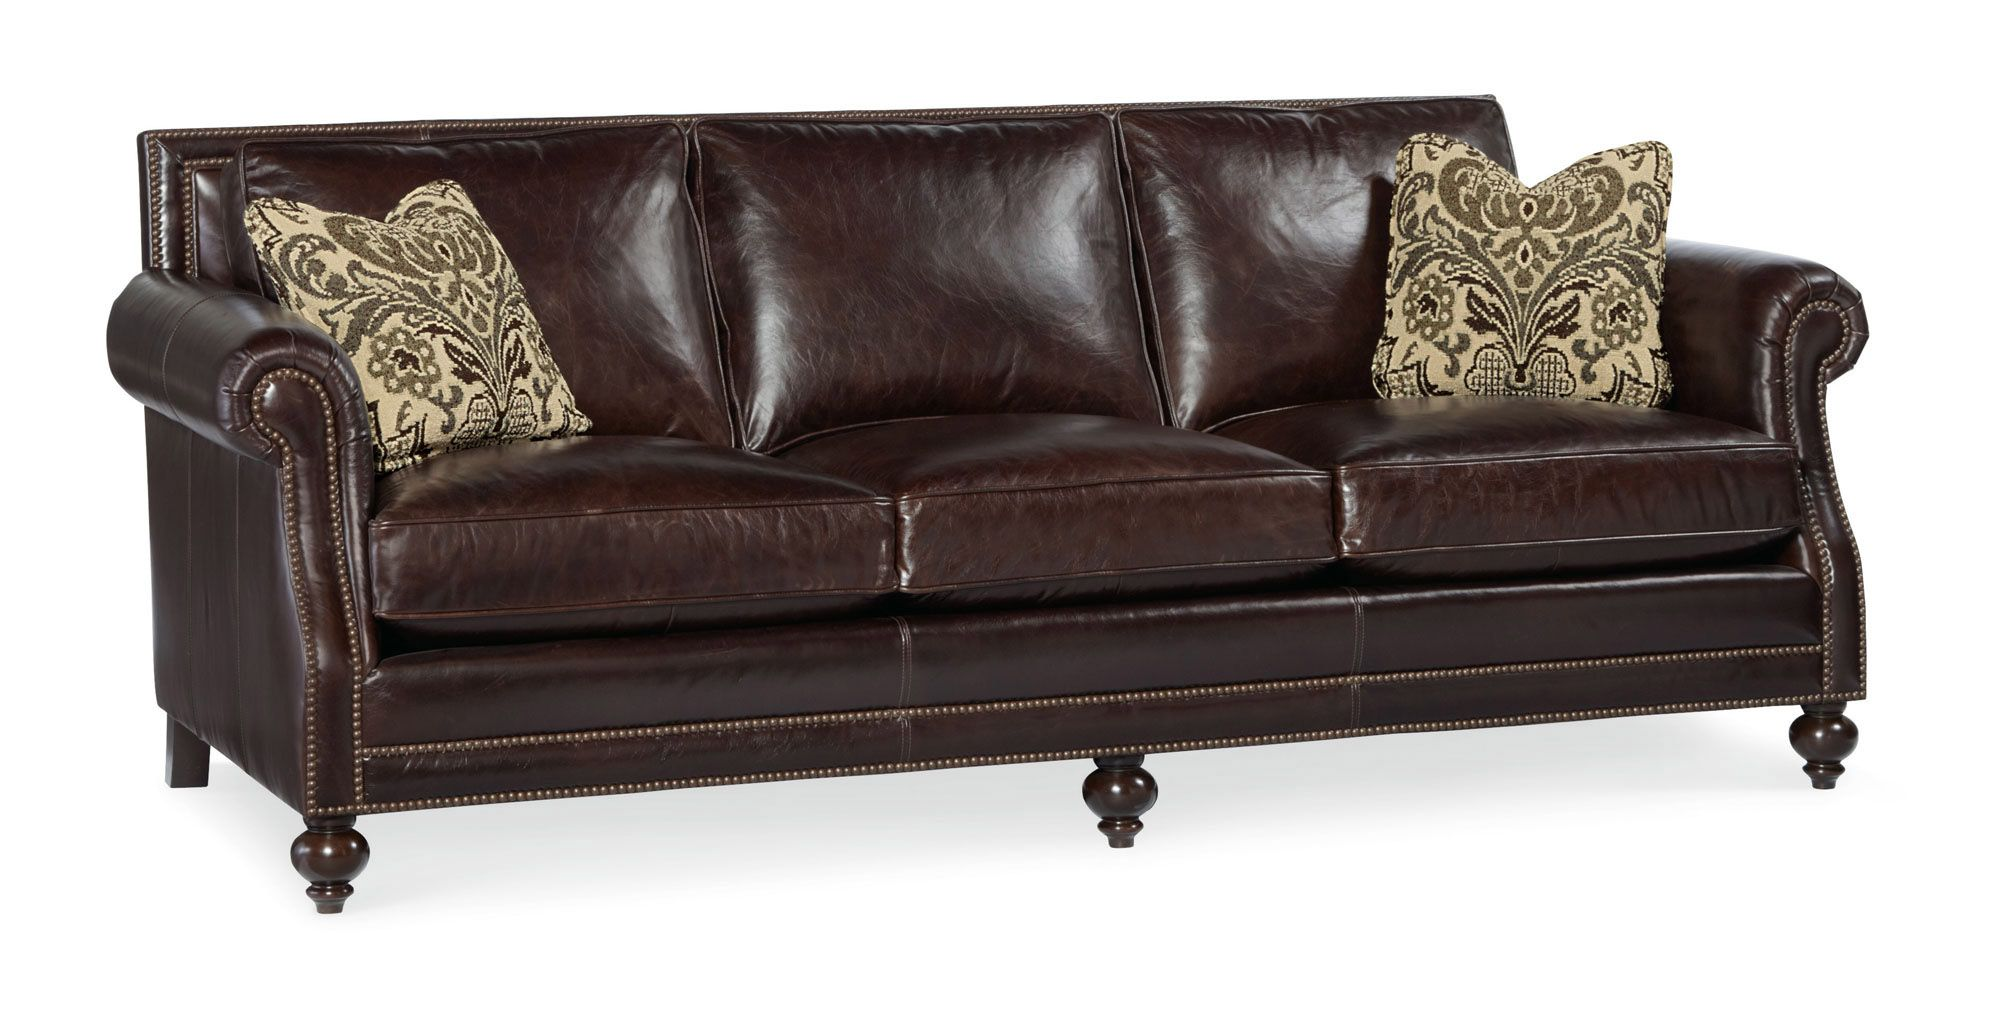 bernhardt walsh sofa rialto lazy boy leather reviews baci living room